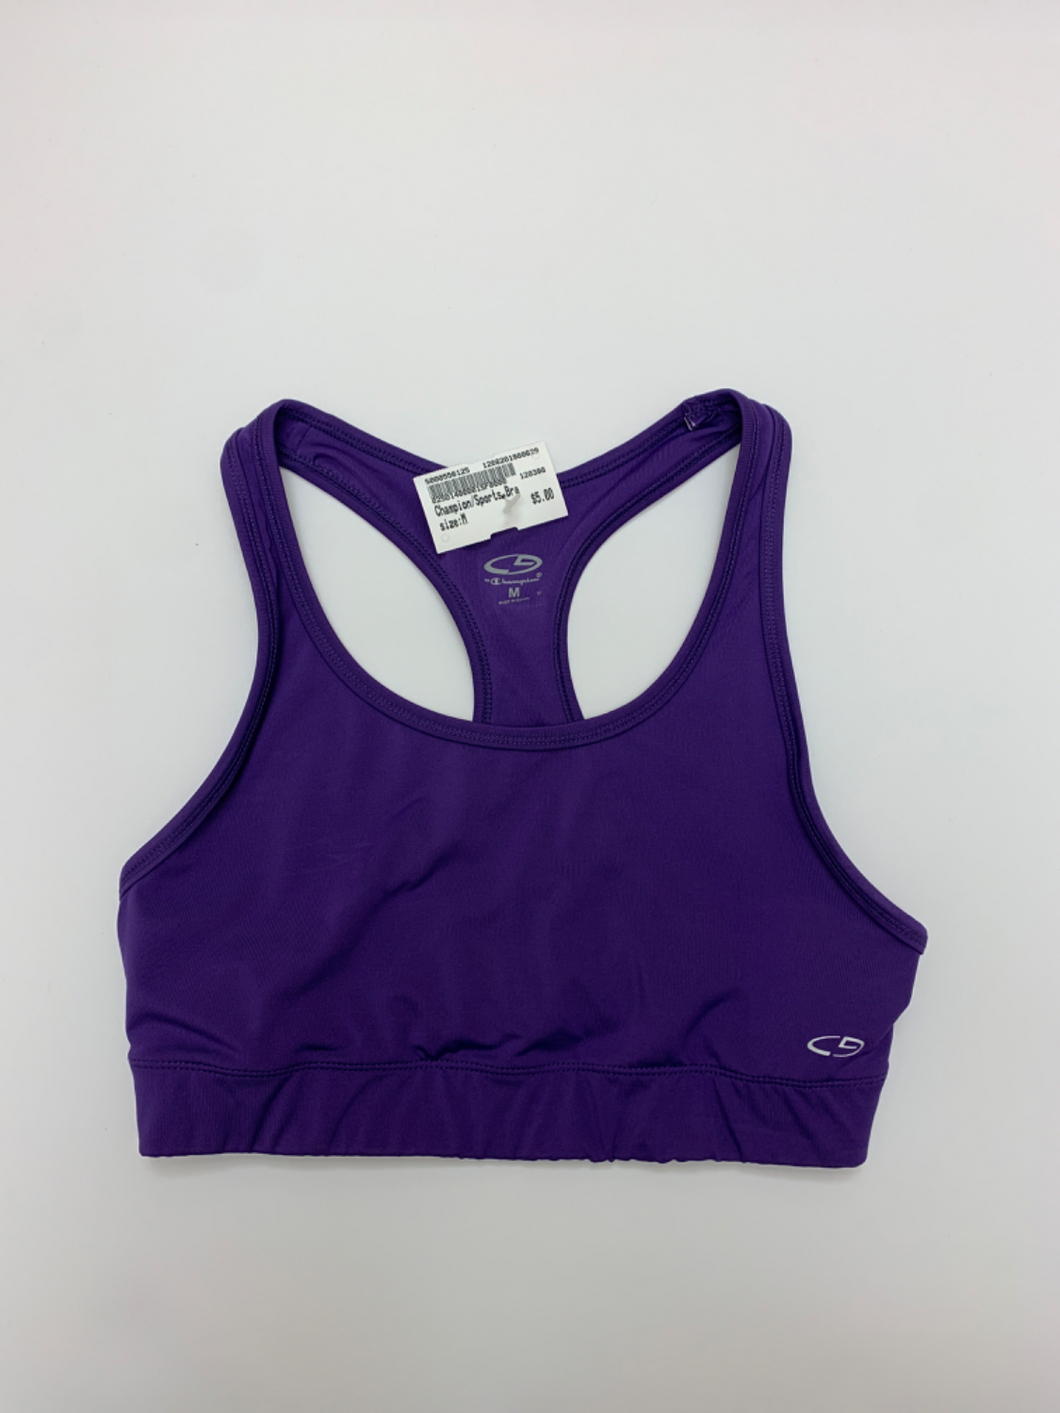 Champion Sports Bra Size Medium